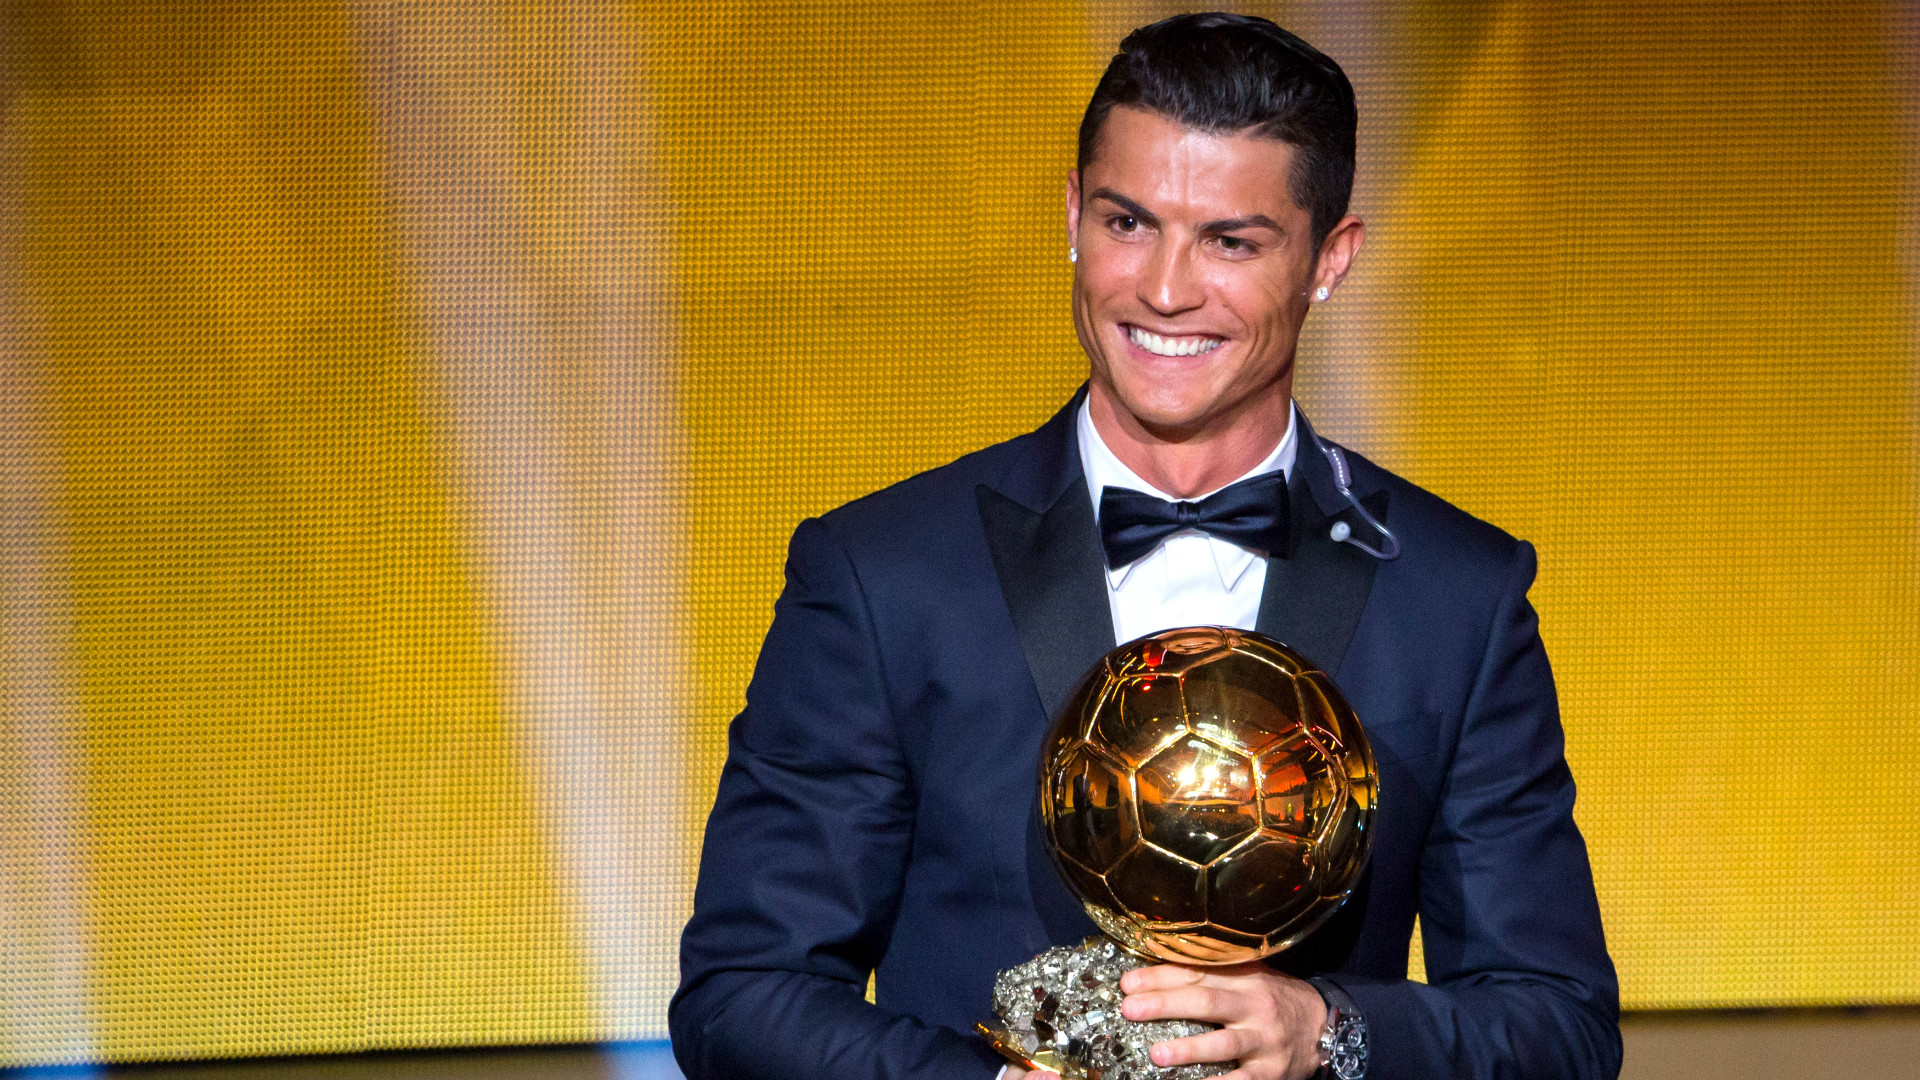 'I don't live for individual prizes' - Ronaldo downplays chase for sixth Ballon d'Or